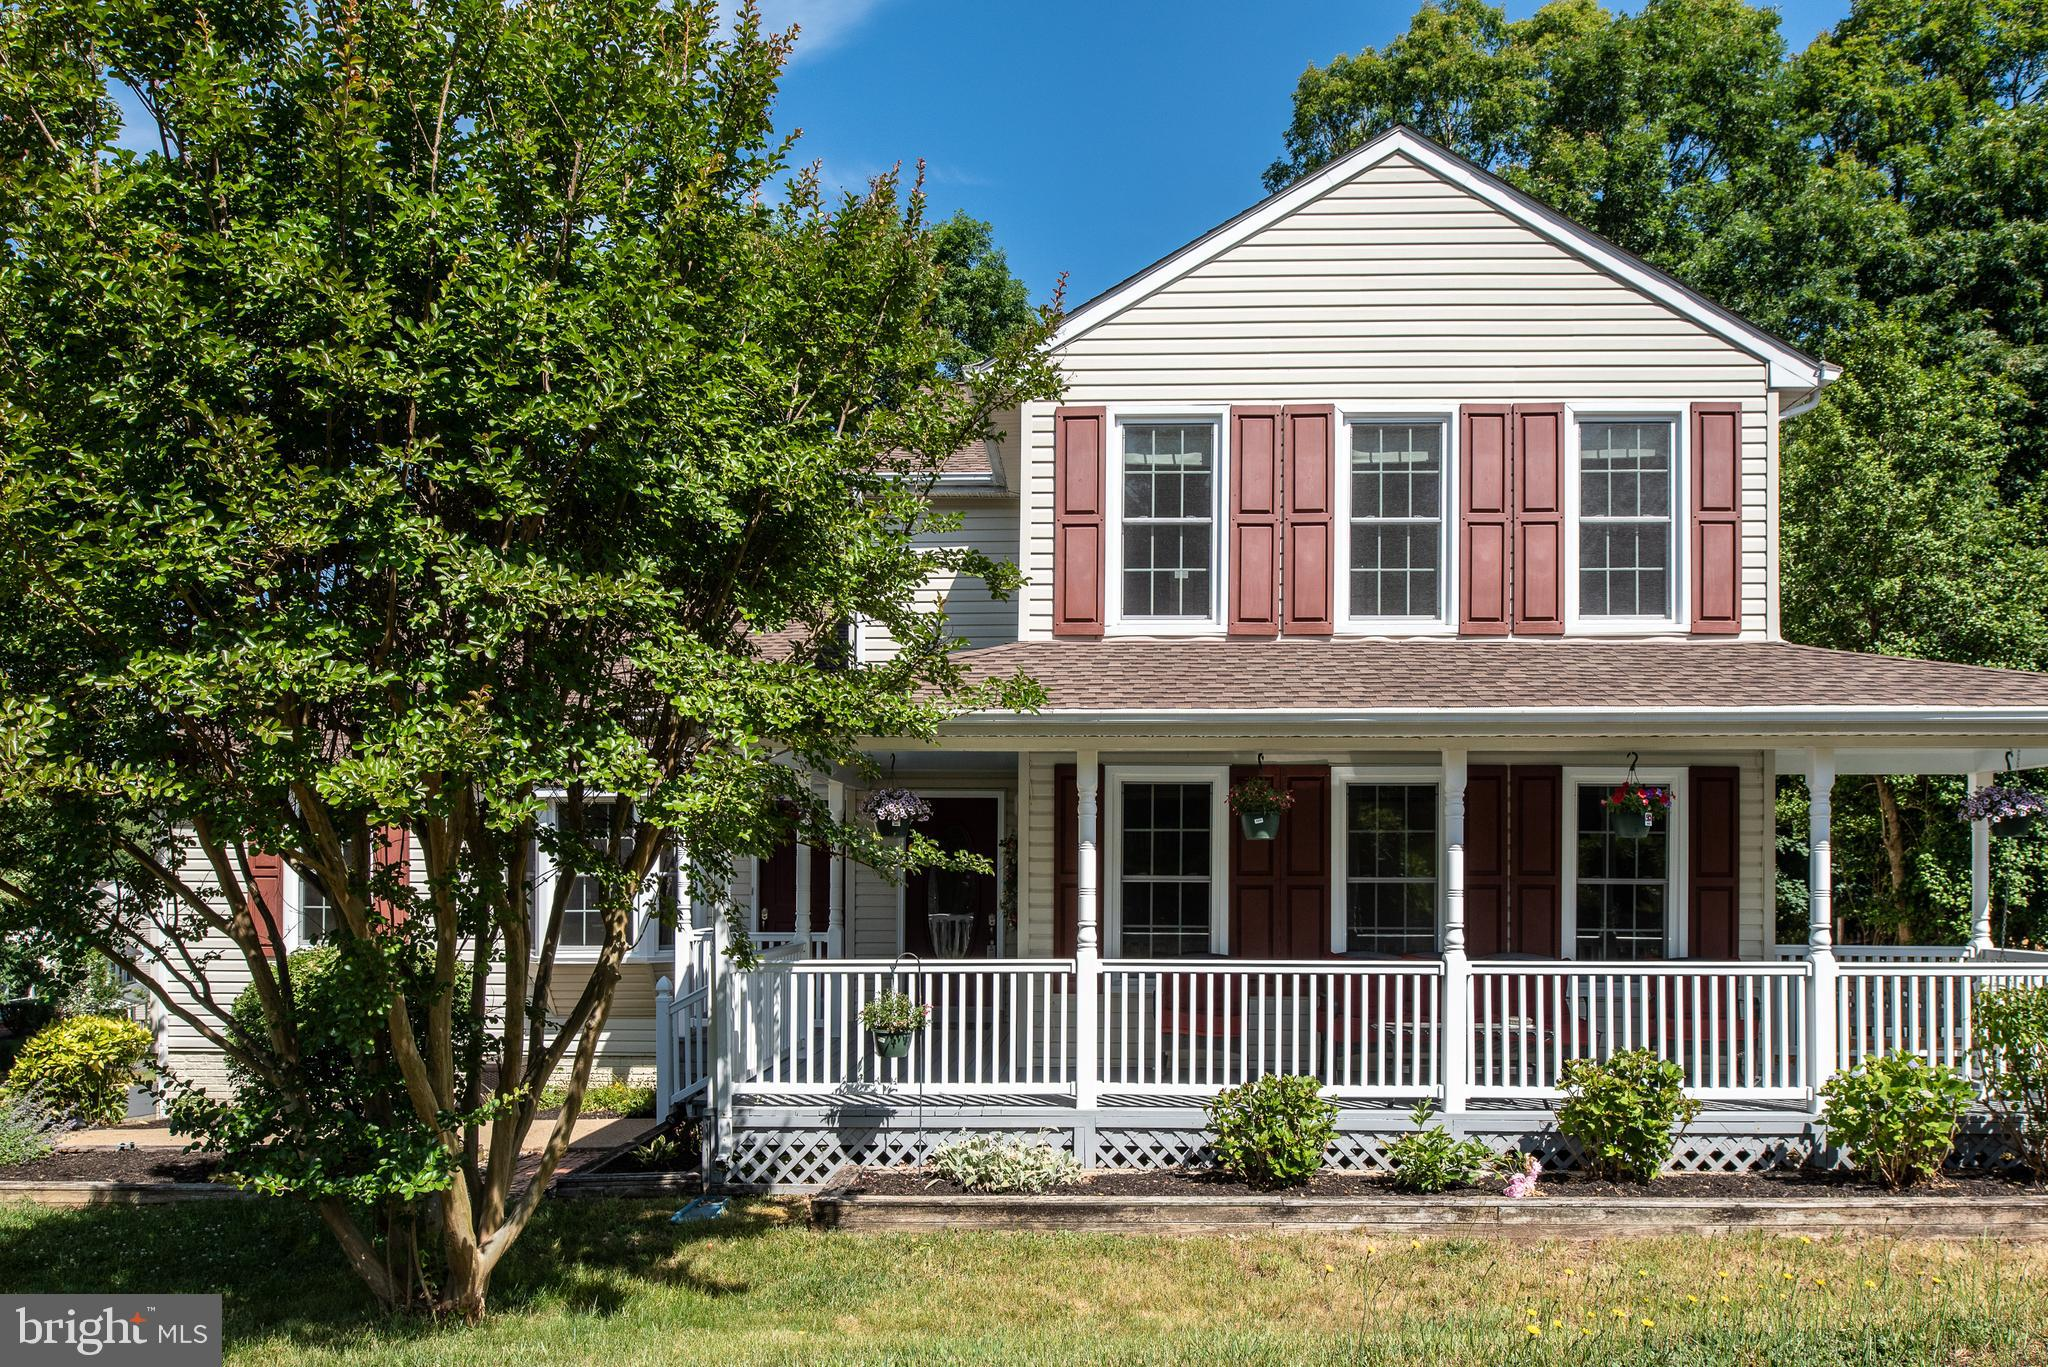 PRICE IMPROVEMENT  Looking for that much needed Space...look no more! This Spacious Colonial with a Wrap Around Porch sits on a corner lot in a sought after neighborhood. The Location is a prime spot for commuter lot, VRE, Shopping and much more. This 3 level Colonial has the perfect set up . Use the separate Au Pair/In Law Suite that has it's own entrance, 2 bedrooms , Jack & Jill Bath, Full Kitchen and Large living area. This Suite has it's very own HVAC unit that was replaced in 2020 to include a nest thermostat. A separate entry way leads you into the attached  Main home that has more than enough space and storage, you'll think you have two separate homes! All new PELLA Windows throughout wrapped in vinyl clad on the exterior. New Shutters, New Deck on the Rear to sit and enjoy the sound of nature. This part of the home has an additional 2 dual fuel HVAC units that are less than 5 years old with upper and lower thermostats. Newer water heater, Roof is only 5 yrs, Installed 5/21 Brand New Carpet in Family Room, Newer Carpet in Upper level, Newer Appliances . Maint. Free PVC trim wrapped around garage, My Q garage hub. Home has just been power washed, landscaped & mulched.  Lower level has it's very own workshop, a possible 6th bedroom, storage room and wait until you pull your vehicle into this oversized 2 car garage! This home has it all, you won't be lacking for anything and it certainly won't disappoint!